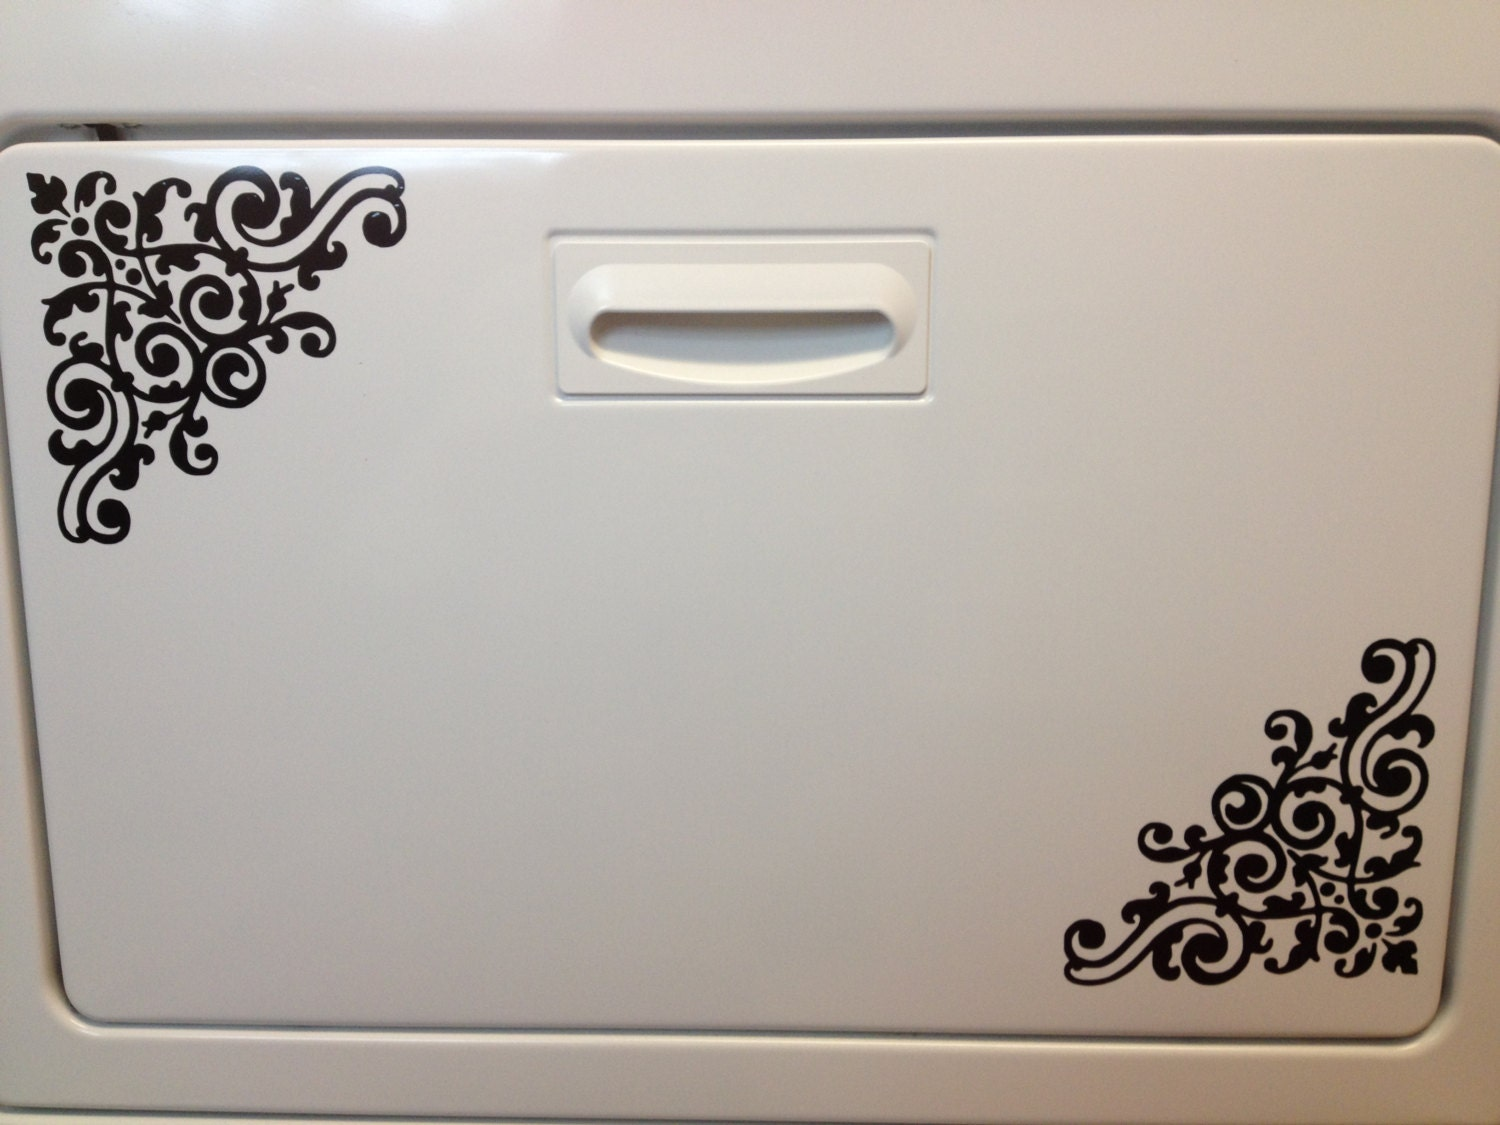 Appliance Art Damask Decal for Kitchen or Other Decor in Size